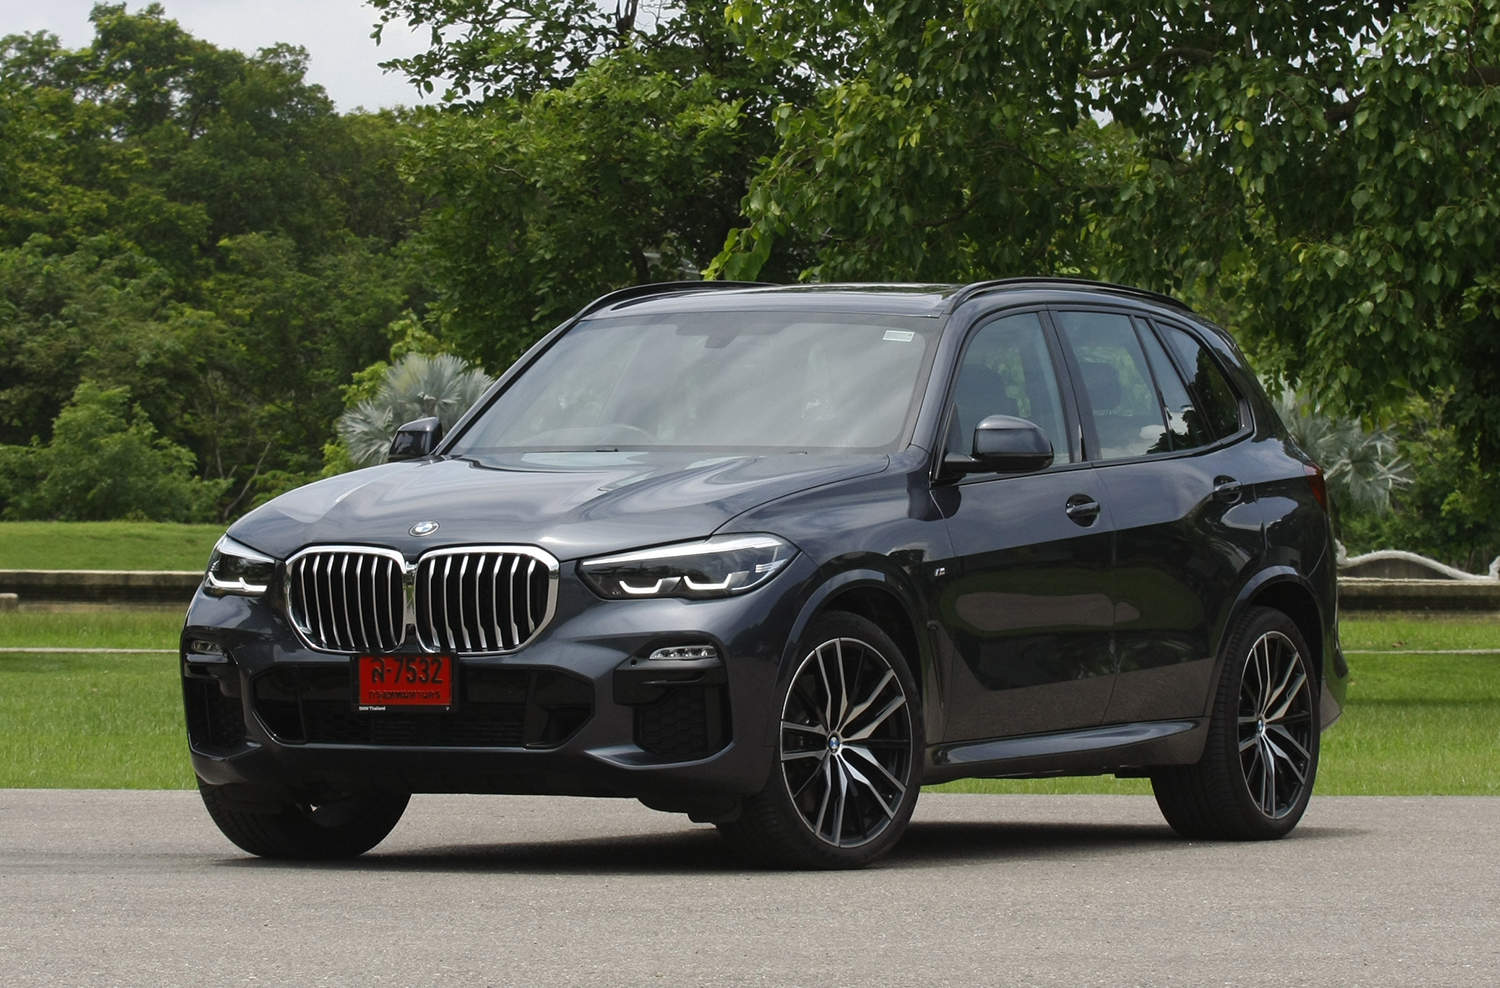 Bmw X5 Xdrive 30d M Sport 2019 Review